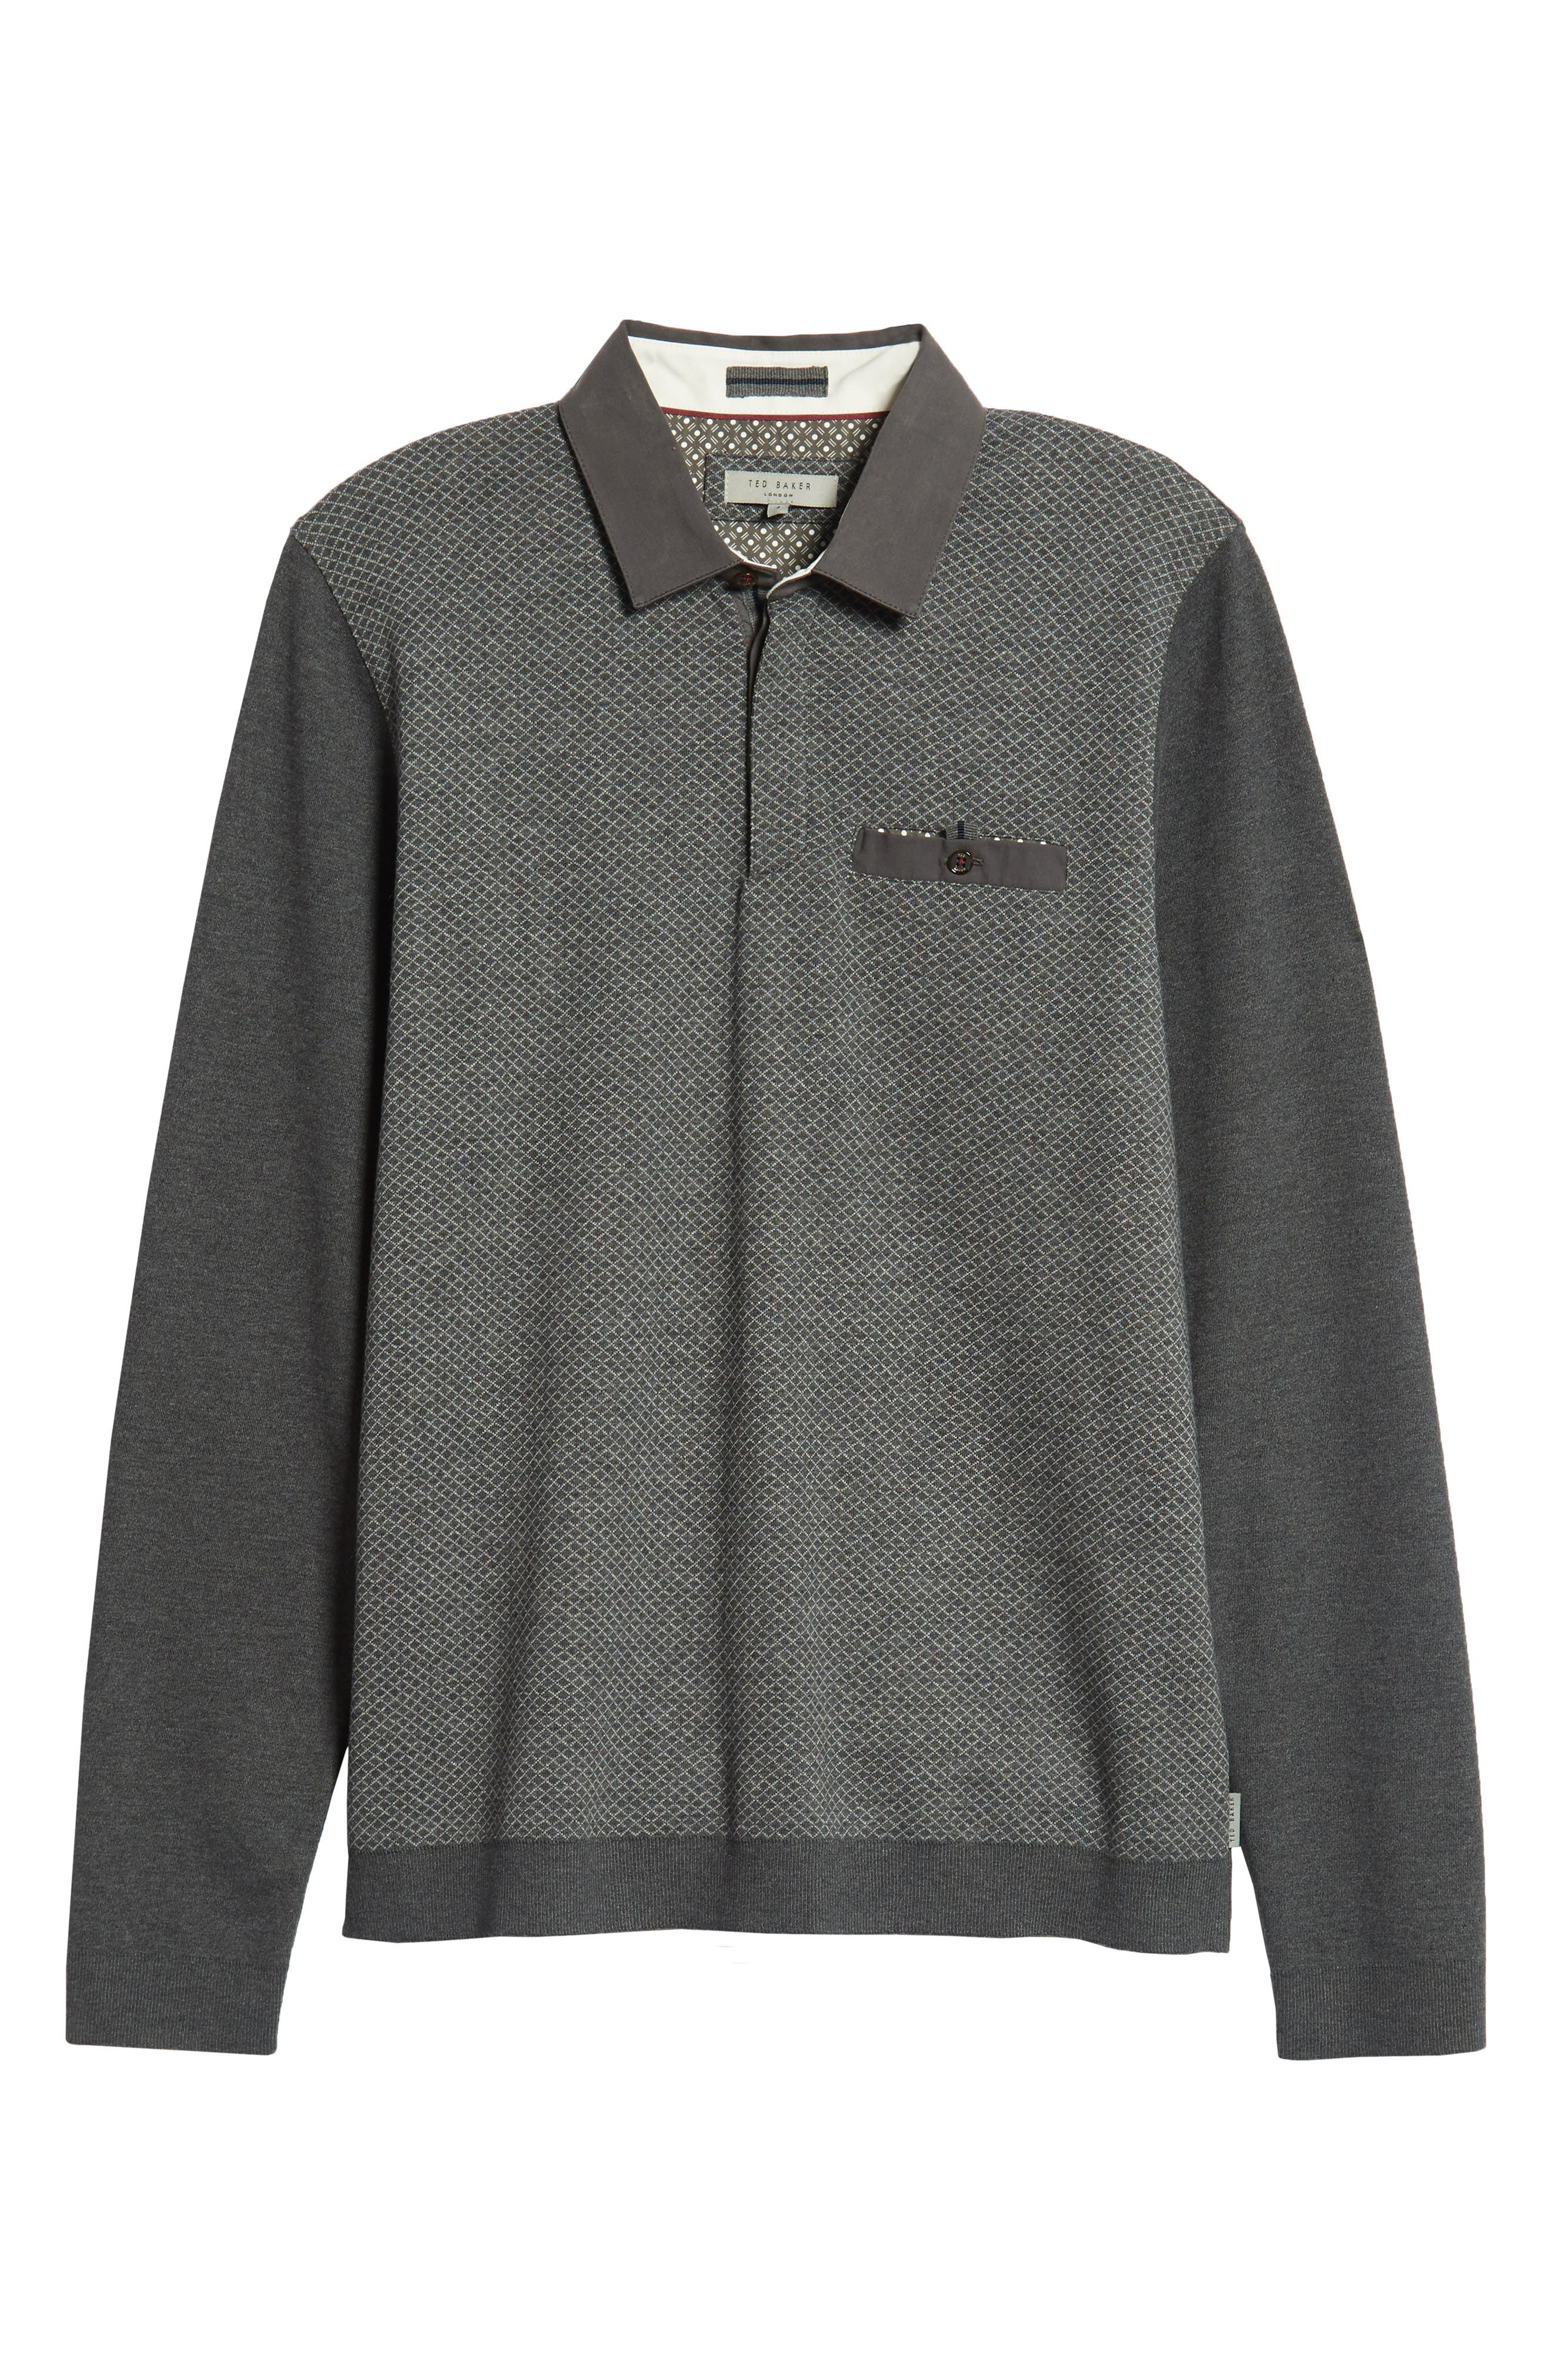 Friend Slim Fit Long Sleeve Polo,                             Alternate thumbnail 6, color,                             CHARCOAL